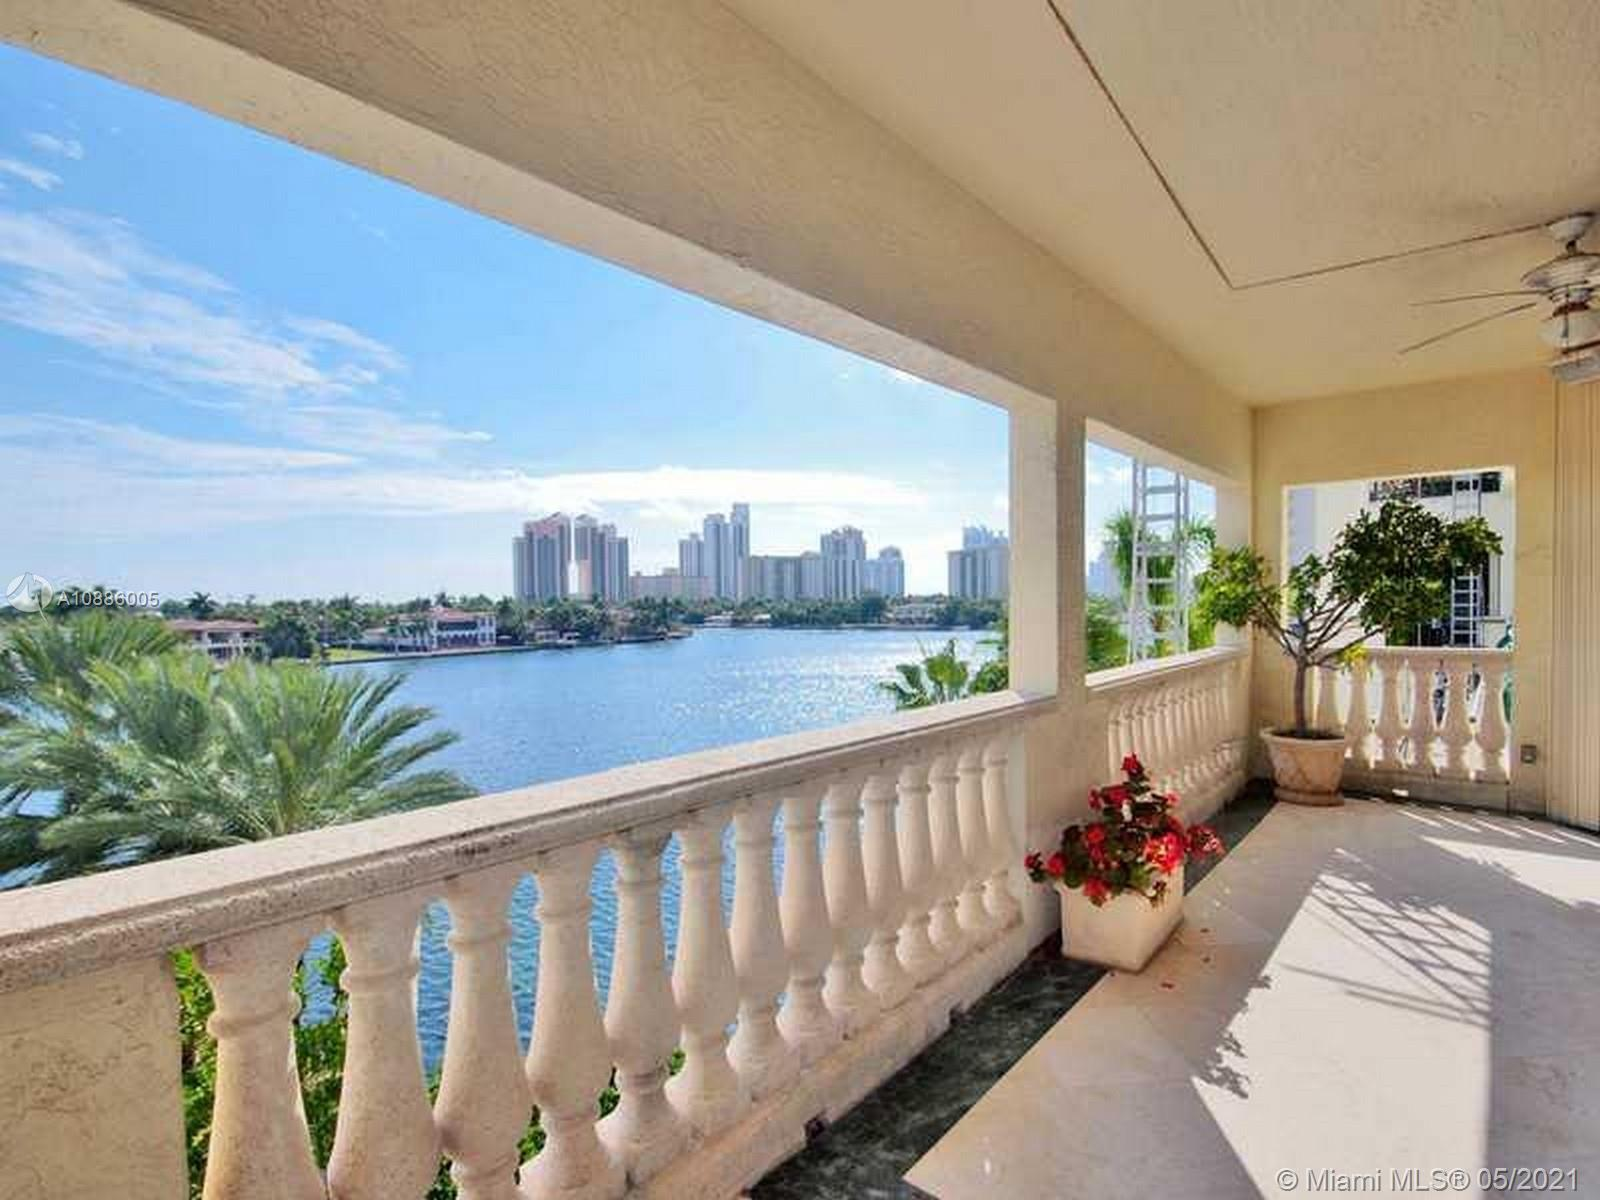 EXTREMELY MOTIVATED SELLER! MUST SELL! MAKE AN OFFER! BEAUTIFUL WATER VIEWS FROM THIS SPACIOUS 3 BED